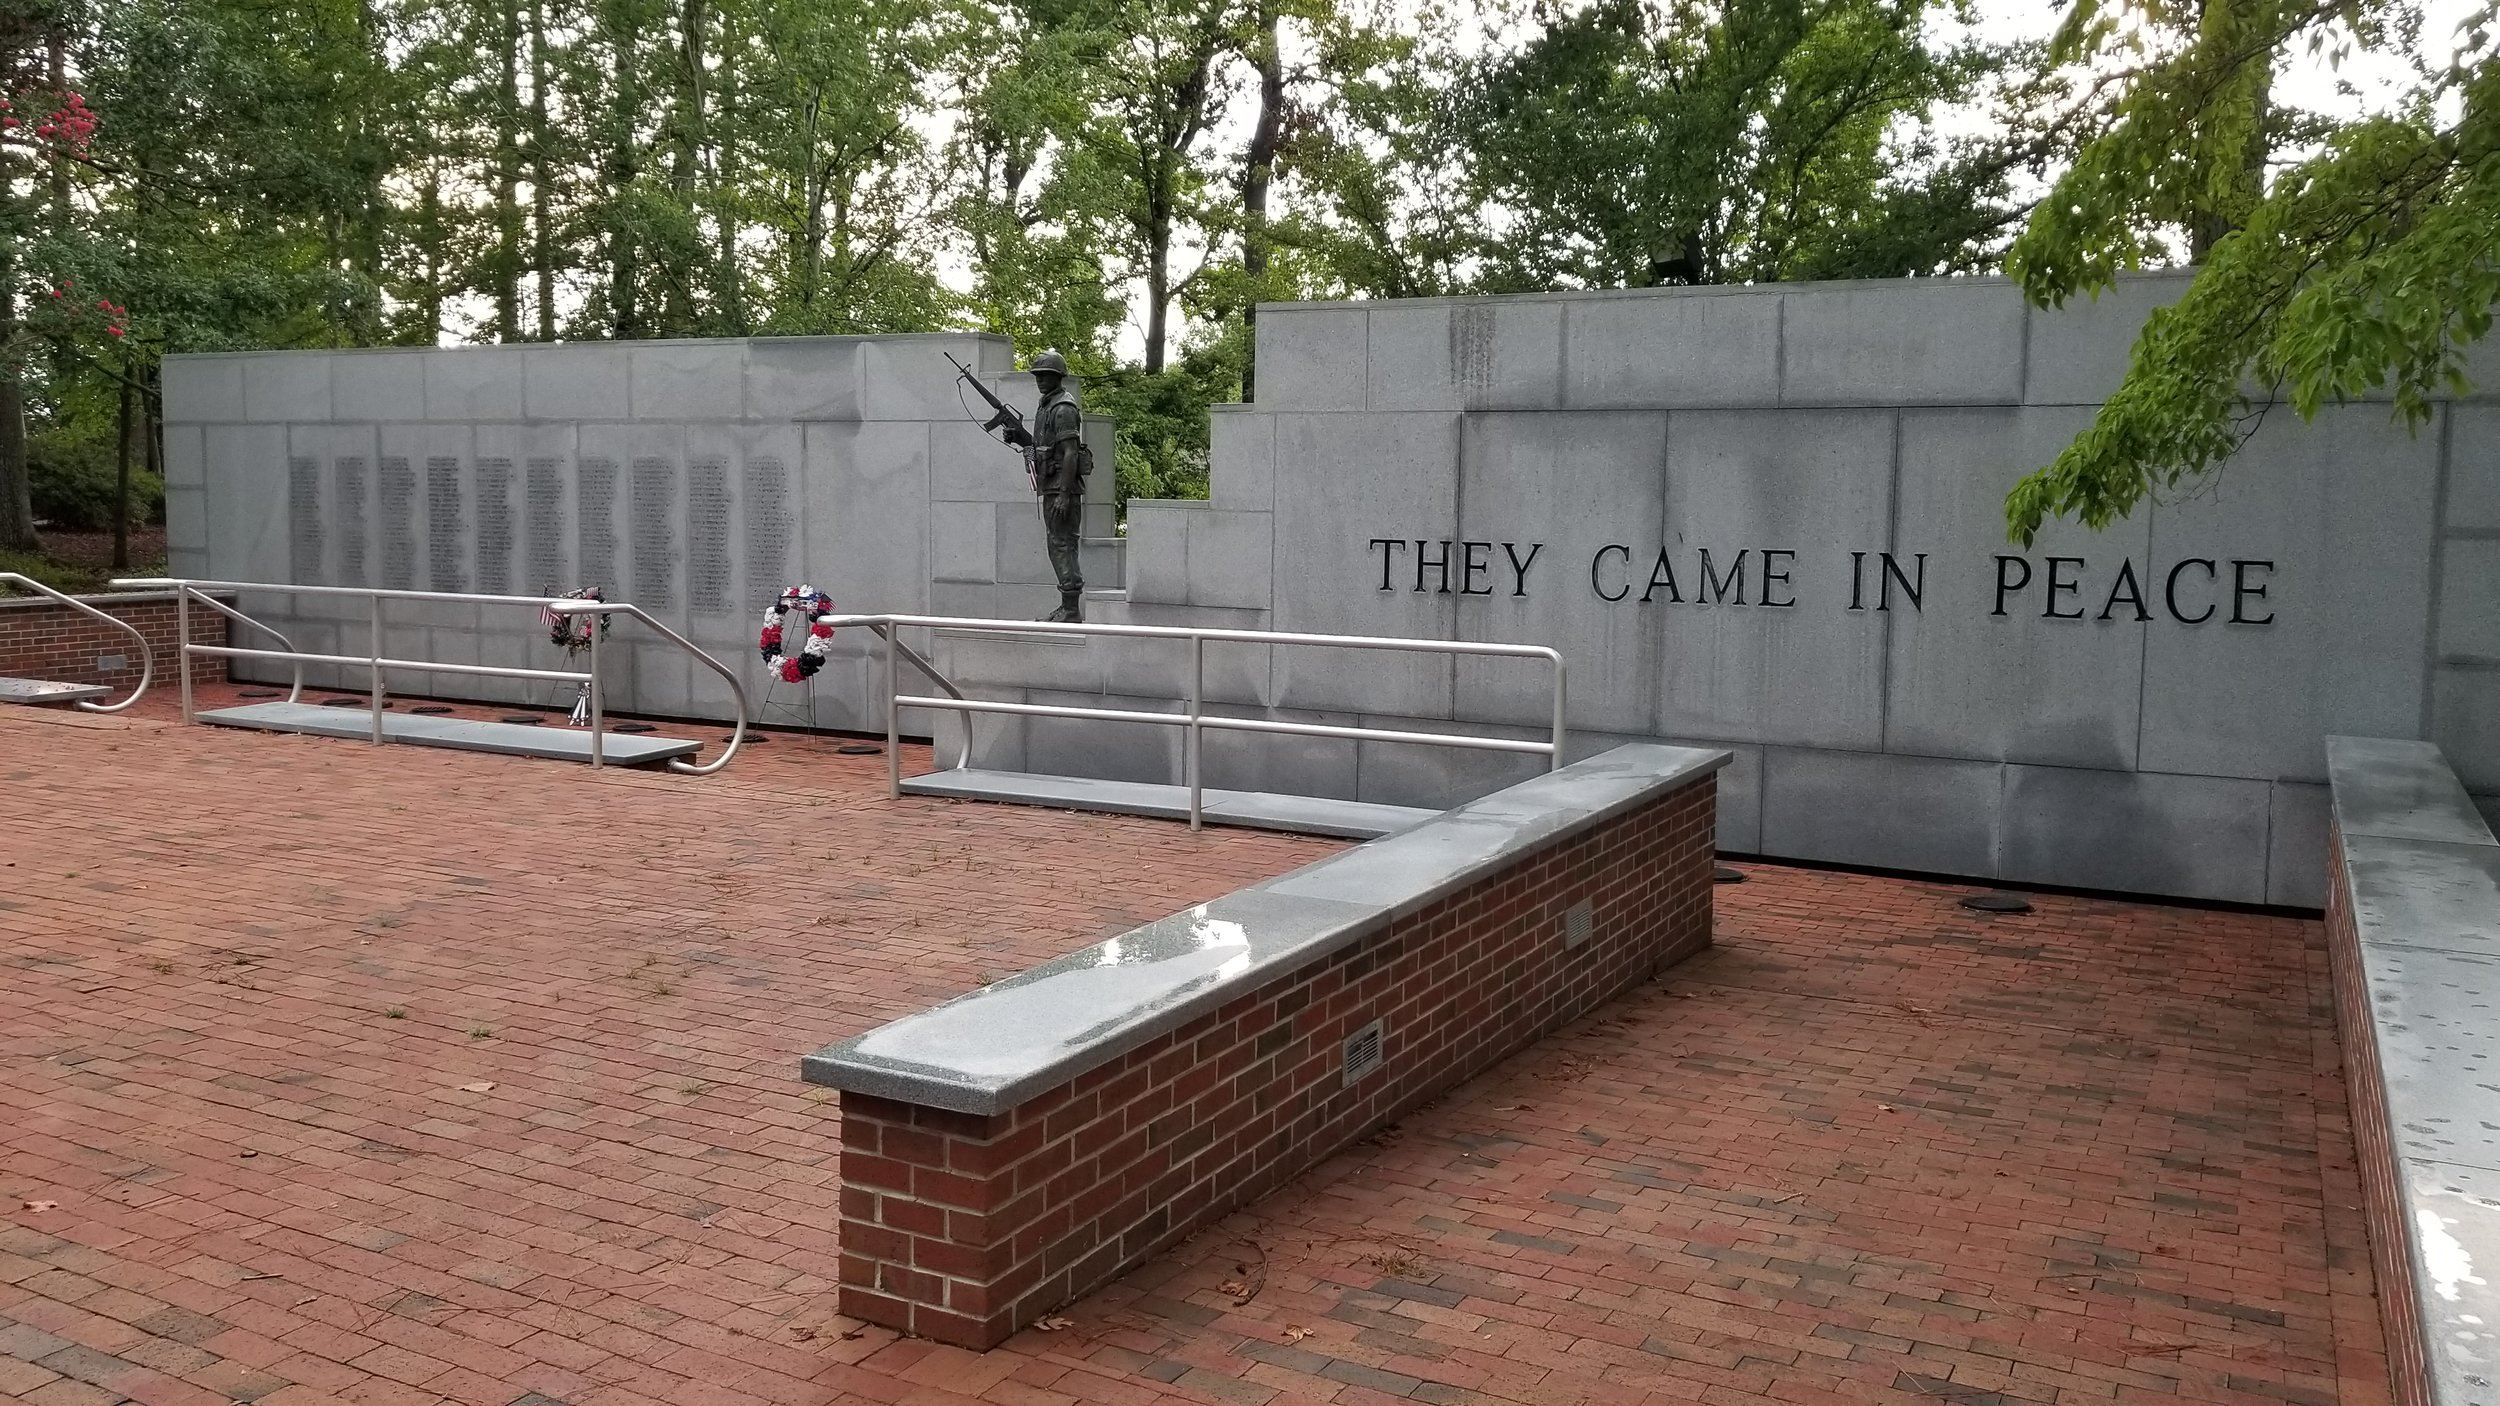 More than 270 names of Marines and others who died in an attack on the barracks in Beirut are etched into the stone wall at this unique memorial in Jacksonville, NC.